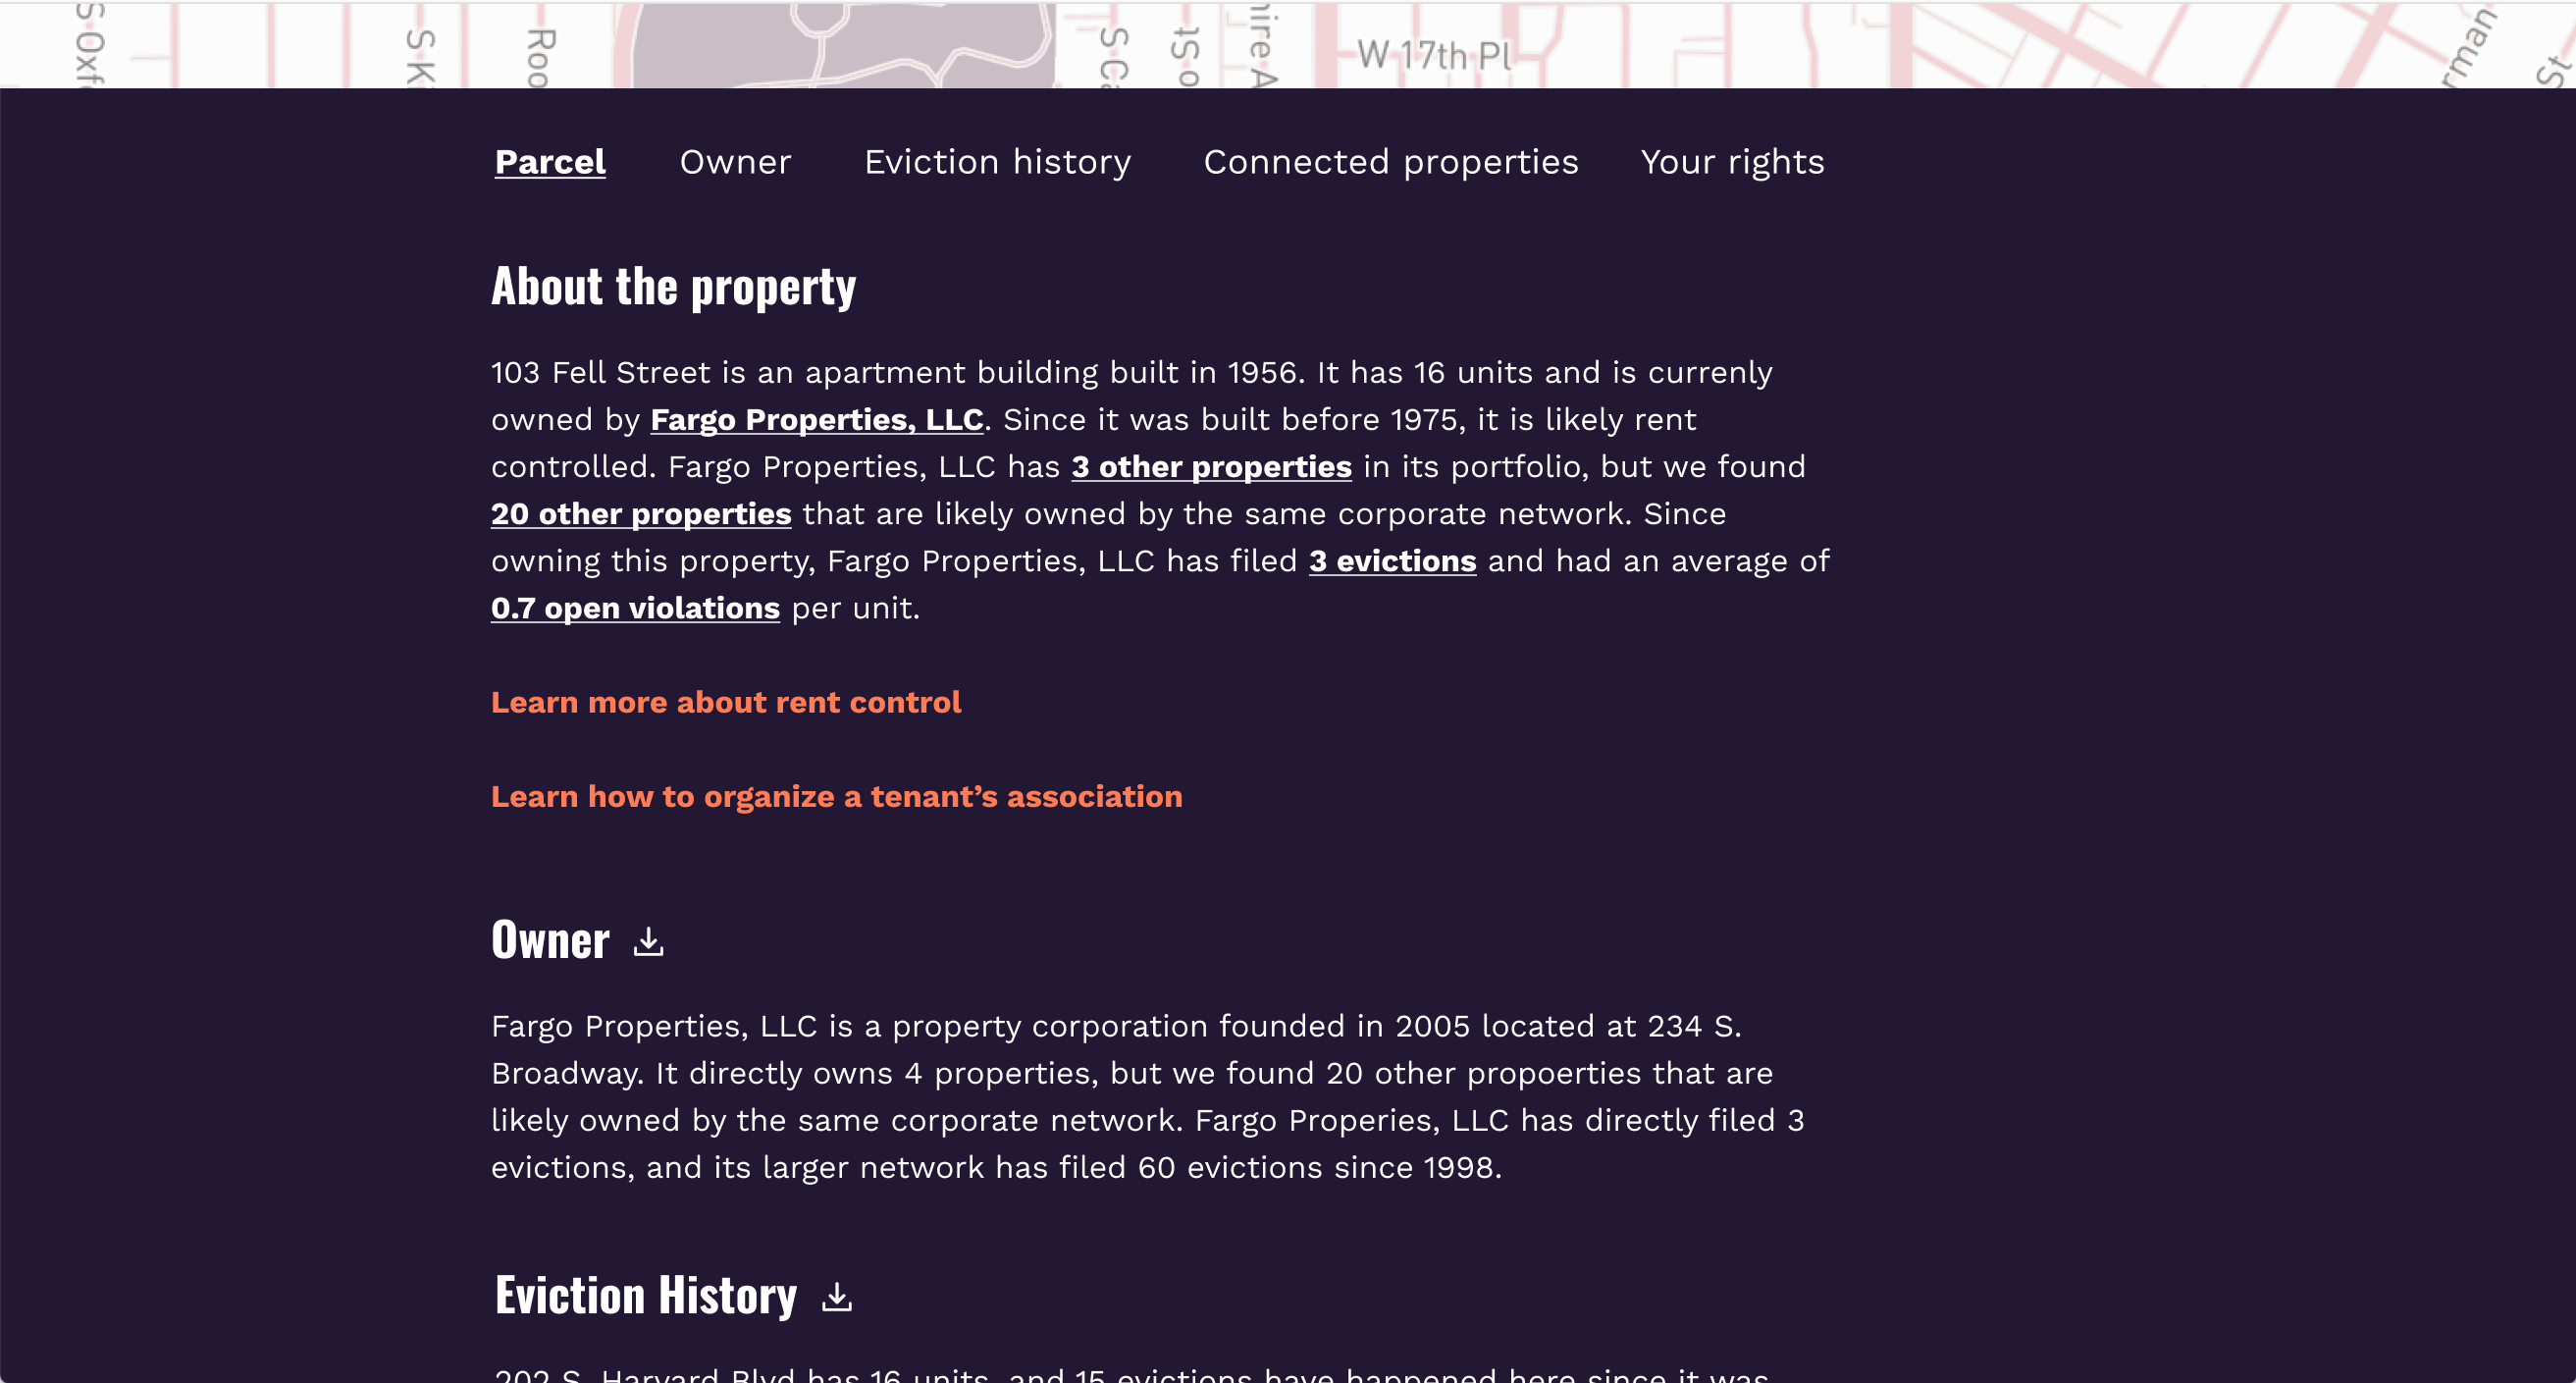 A screenshot from Evictorbook showing details about the selected property, including owner, eviction history, and links to information about rent control and organizing a tenant's association.